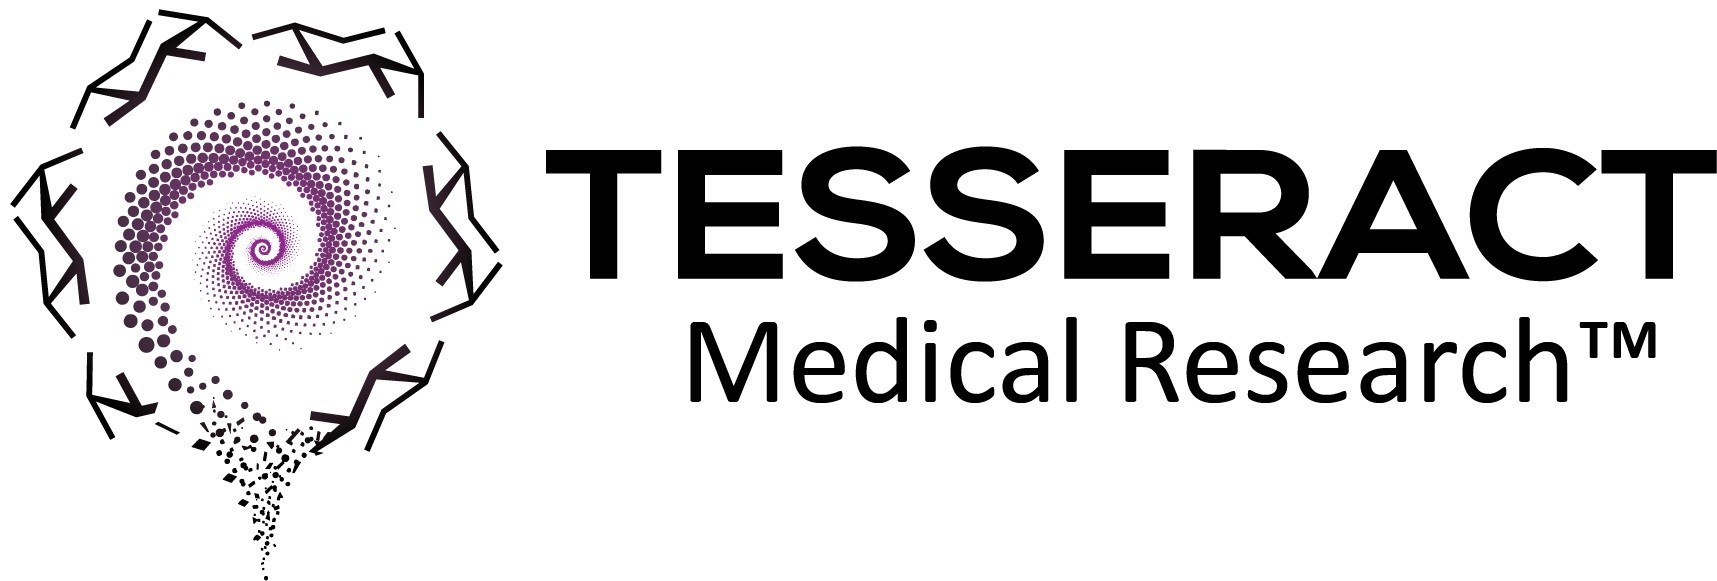 Developed by industry leader, Al Czap, Tesseract Medical Research is now available at Natural Partners. (PRNewsfoto/Natural Partners, Inc.)